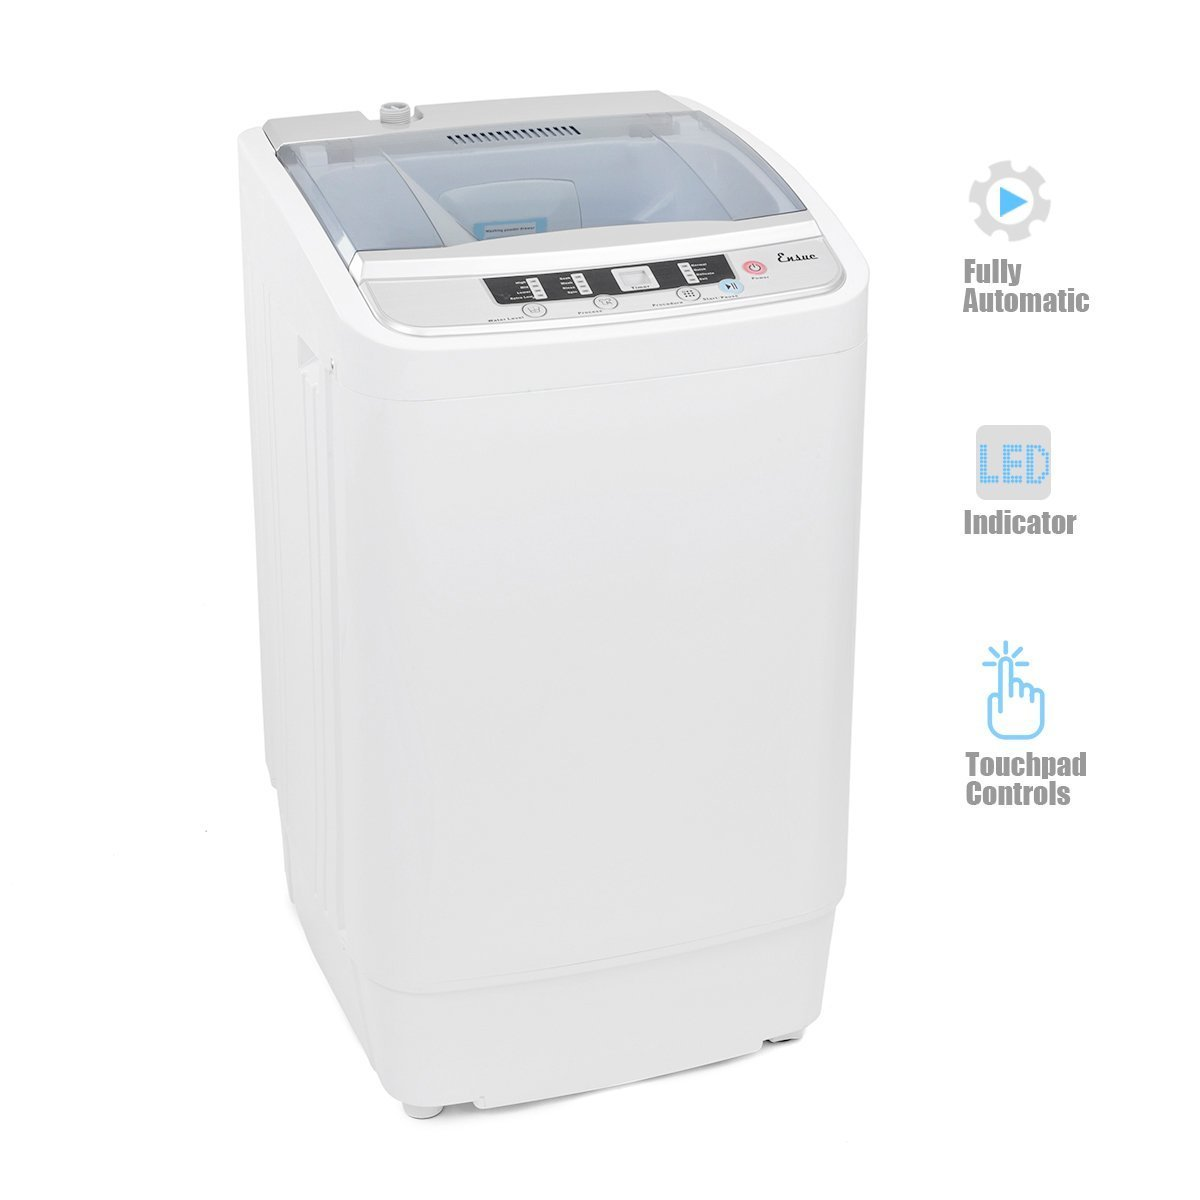 Ensue 7.7lbs Capacity Fully Automatic Portable Mini Washer, Spin Dryer 99815